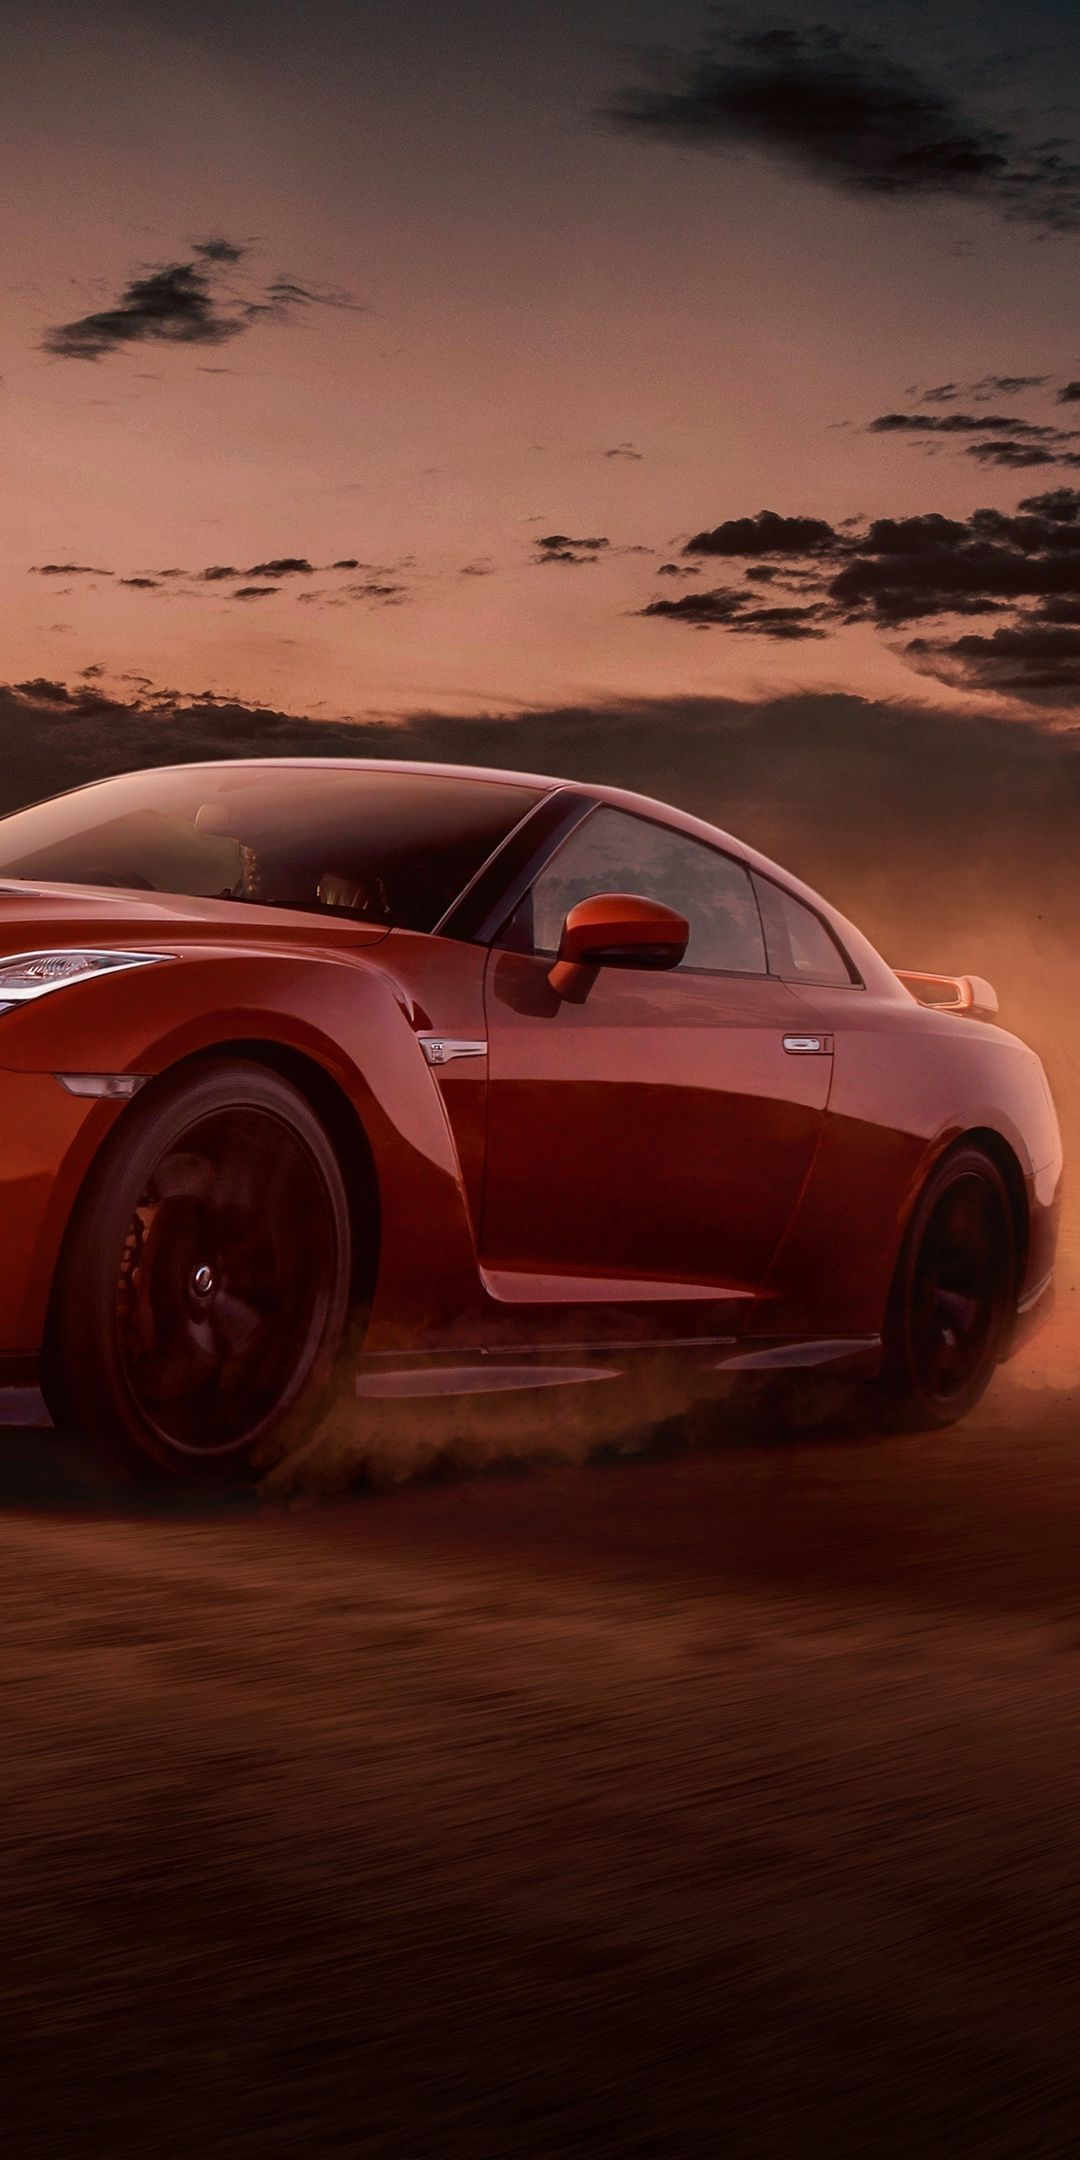 Sports Car Nissan Gt R Orange Wallpaper Nissan Gt Nissan Gt R Sports Car